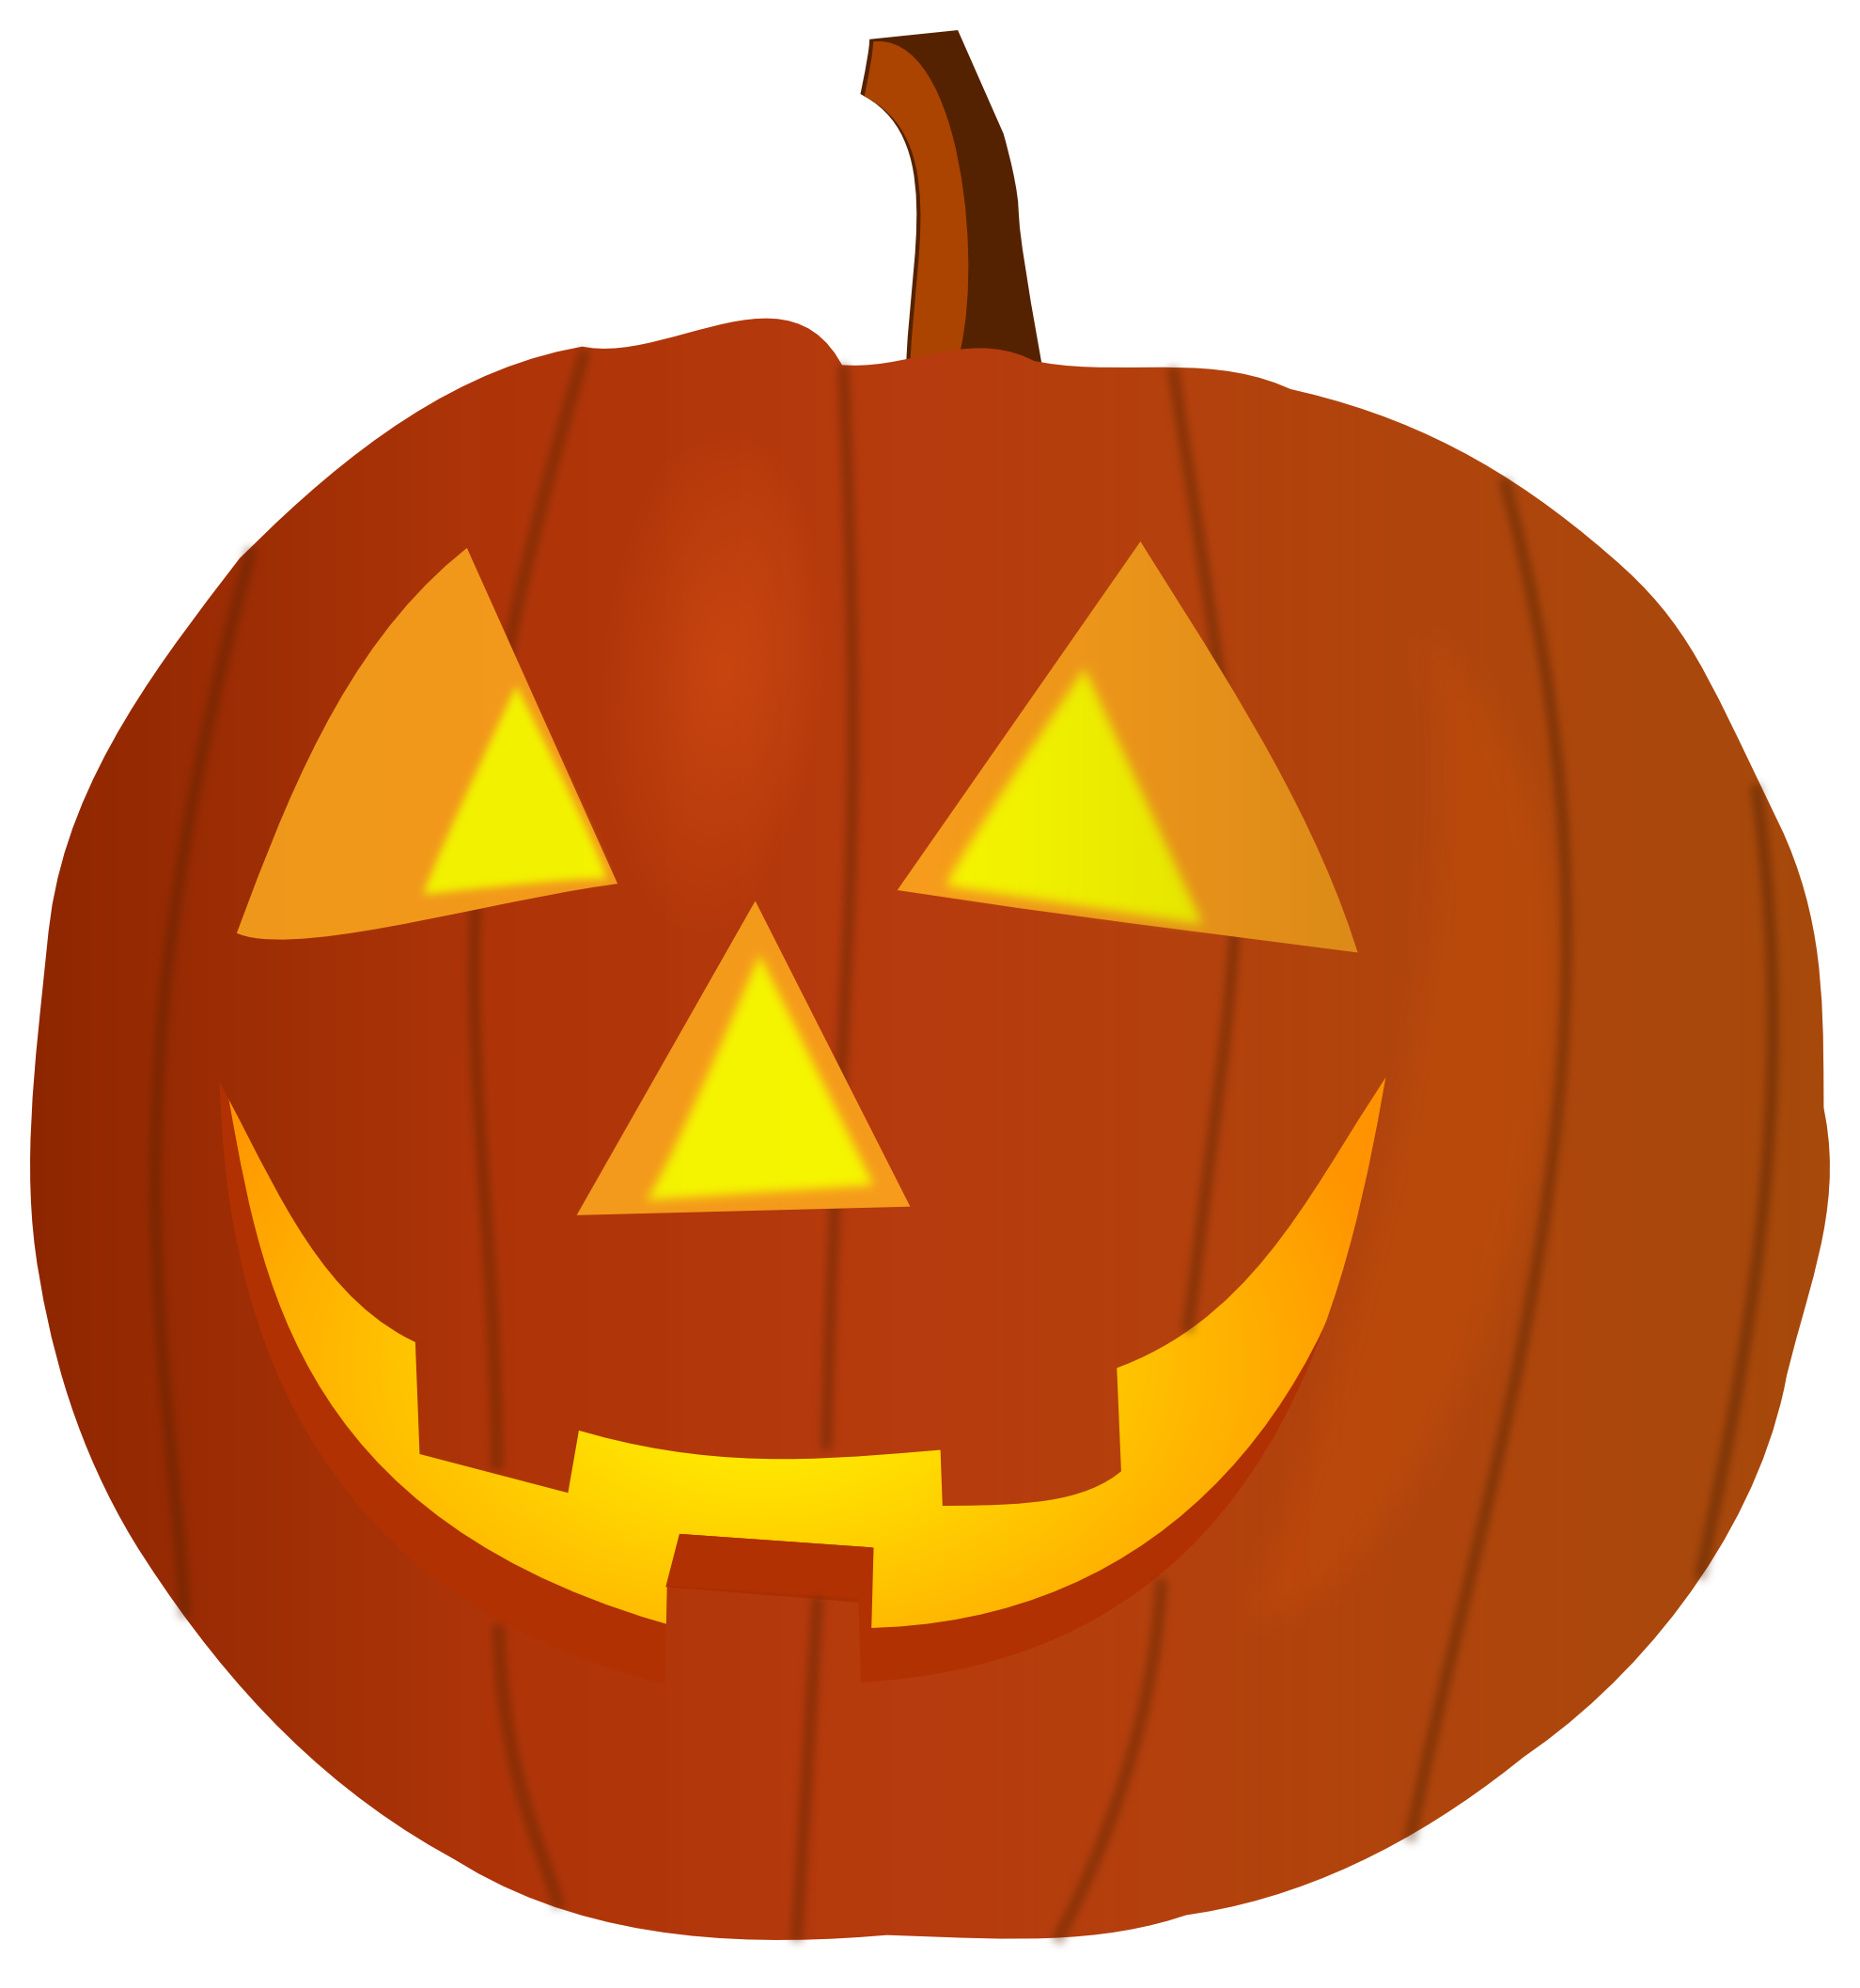 Happy halloween pumpkin clipart free images